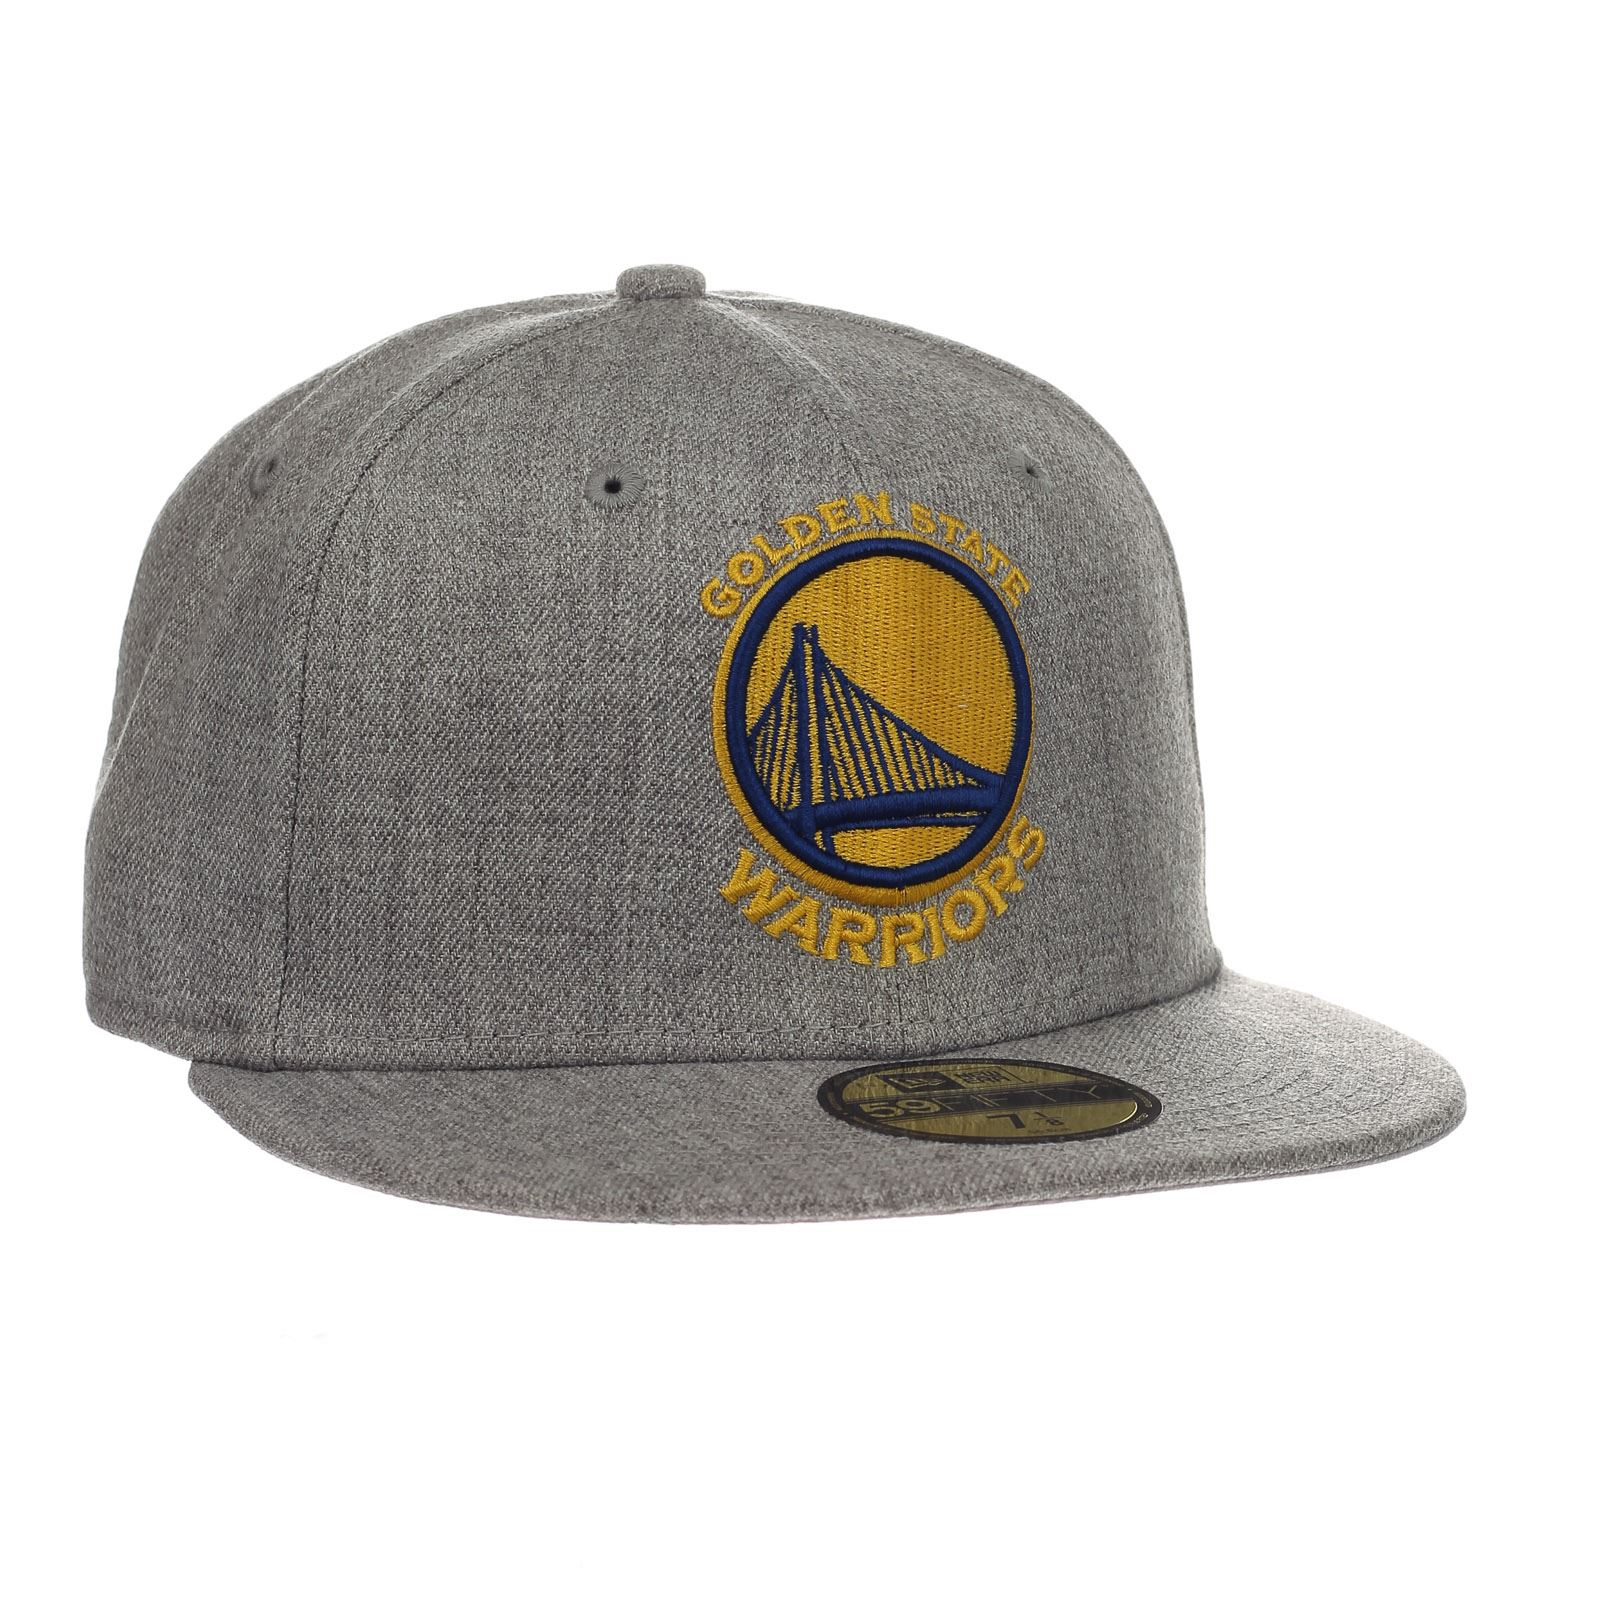 3d3ce936278 Details about New Era and NBA Heather Fitted 59Fifty Cap ~ Golden State  Warriors